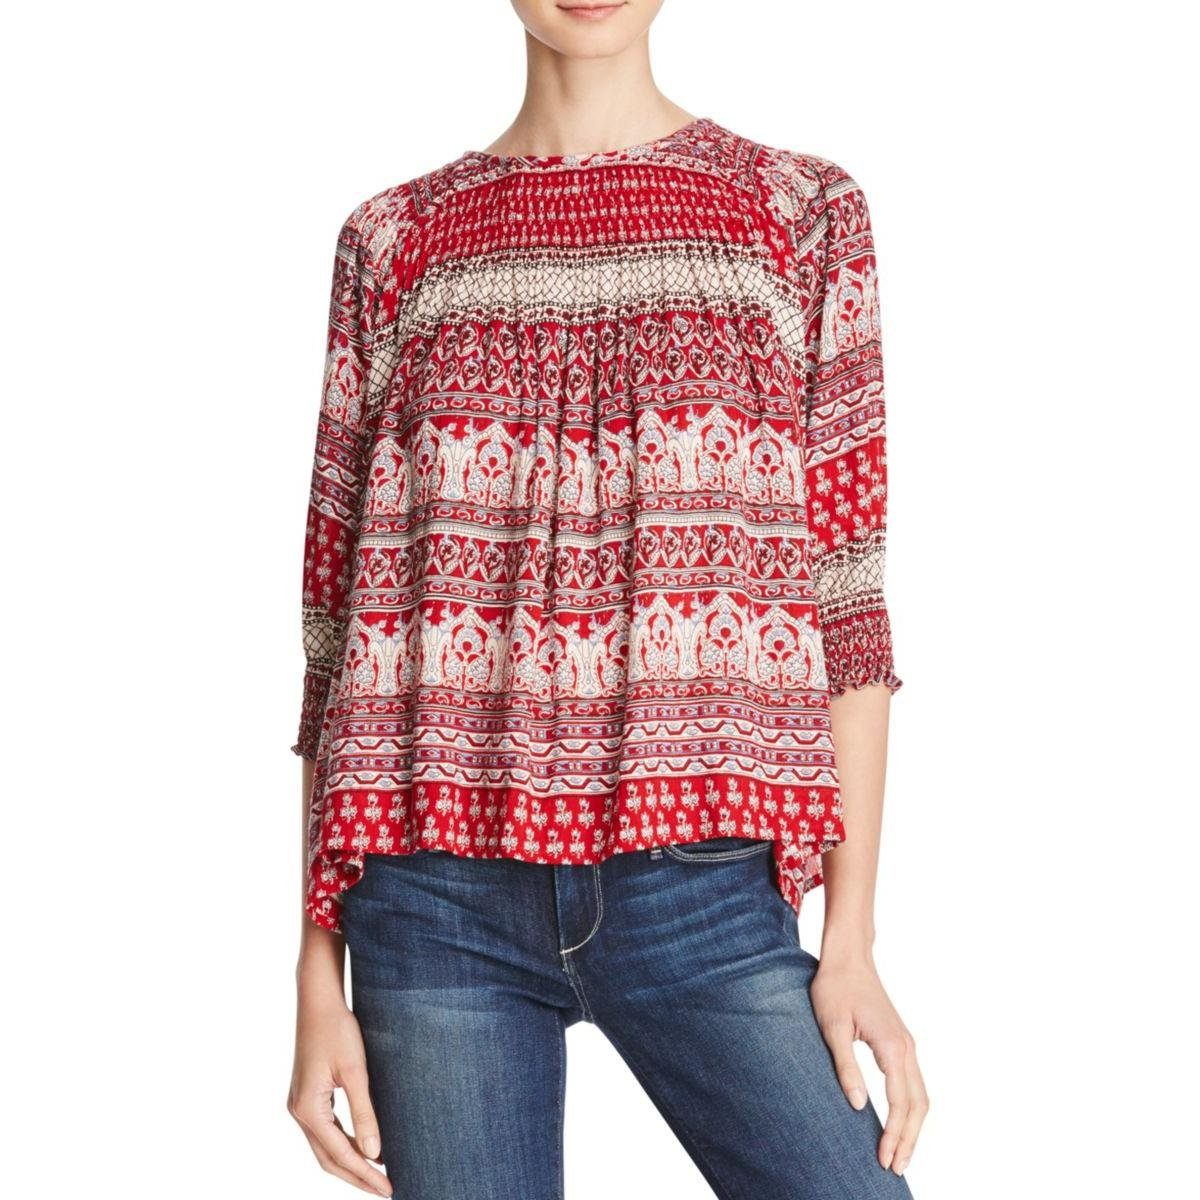 Love Sam Womens Smocked Printed Pullover Top Red S by Love Sam (Image #1)